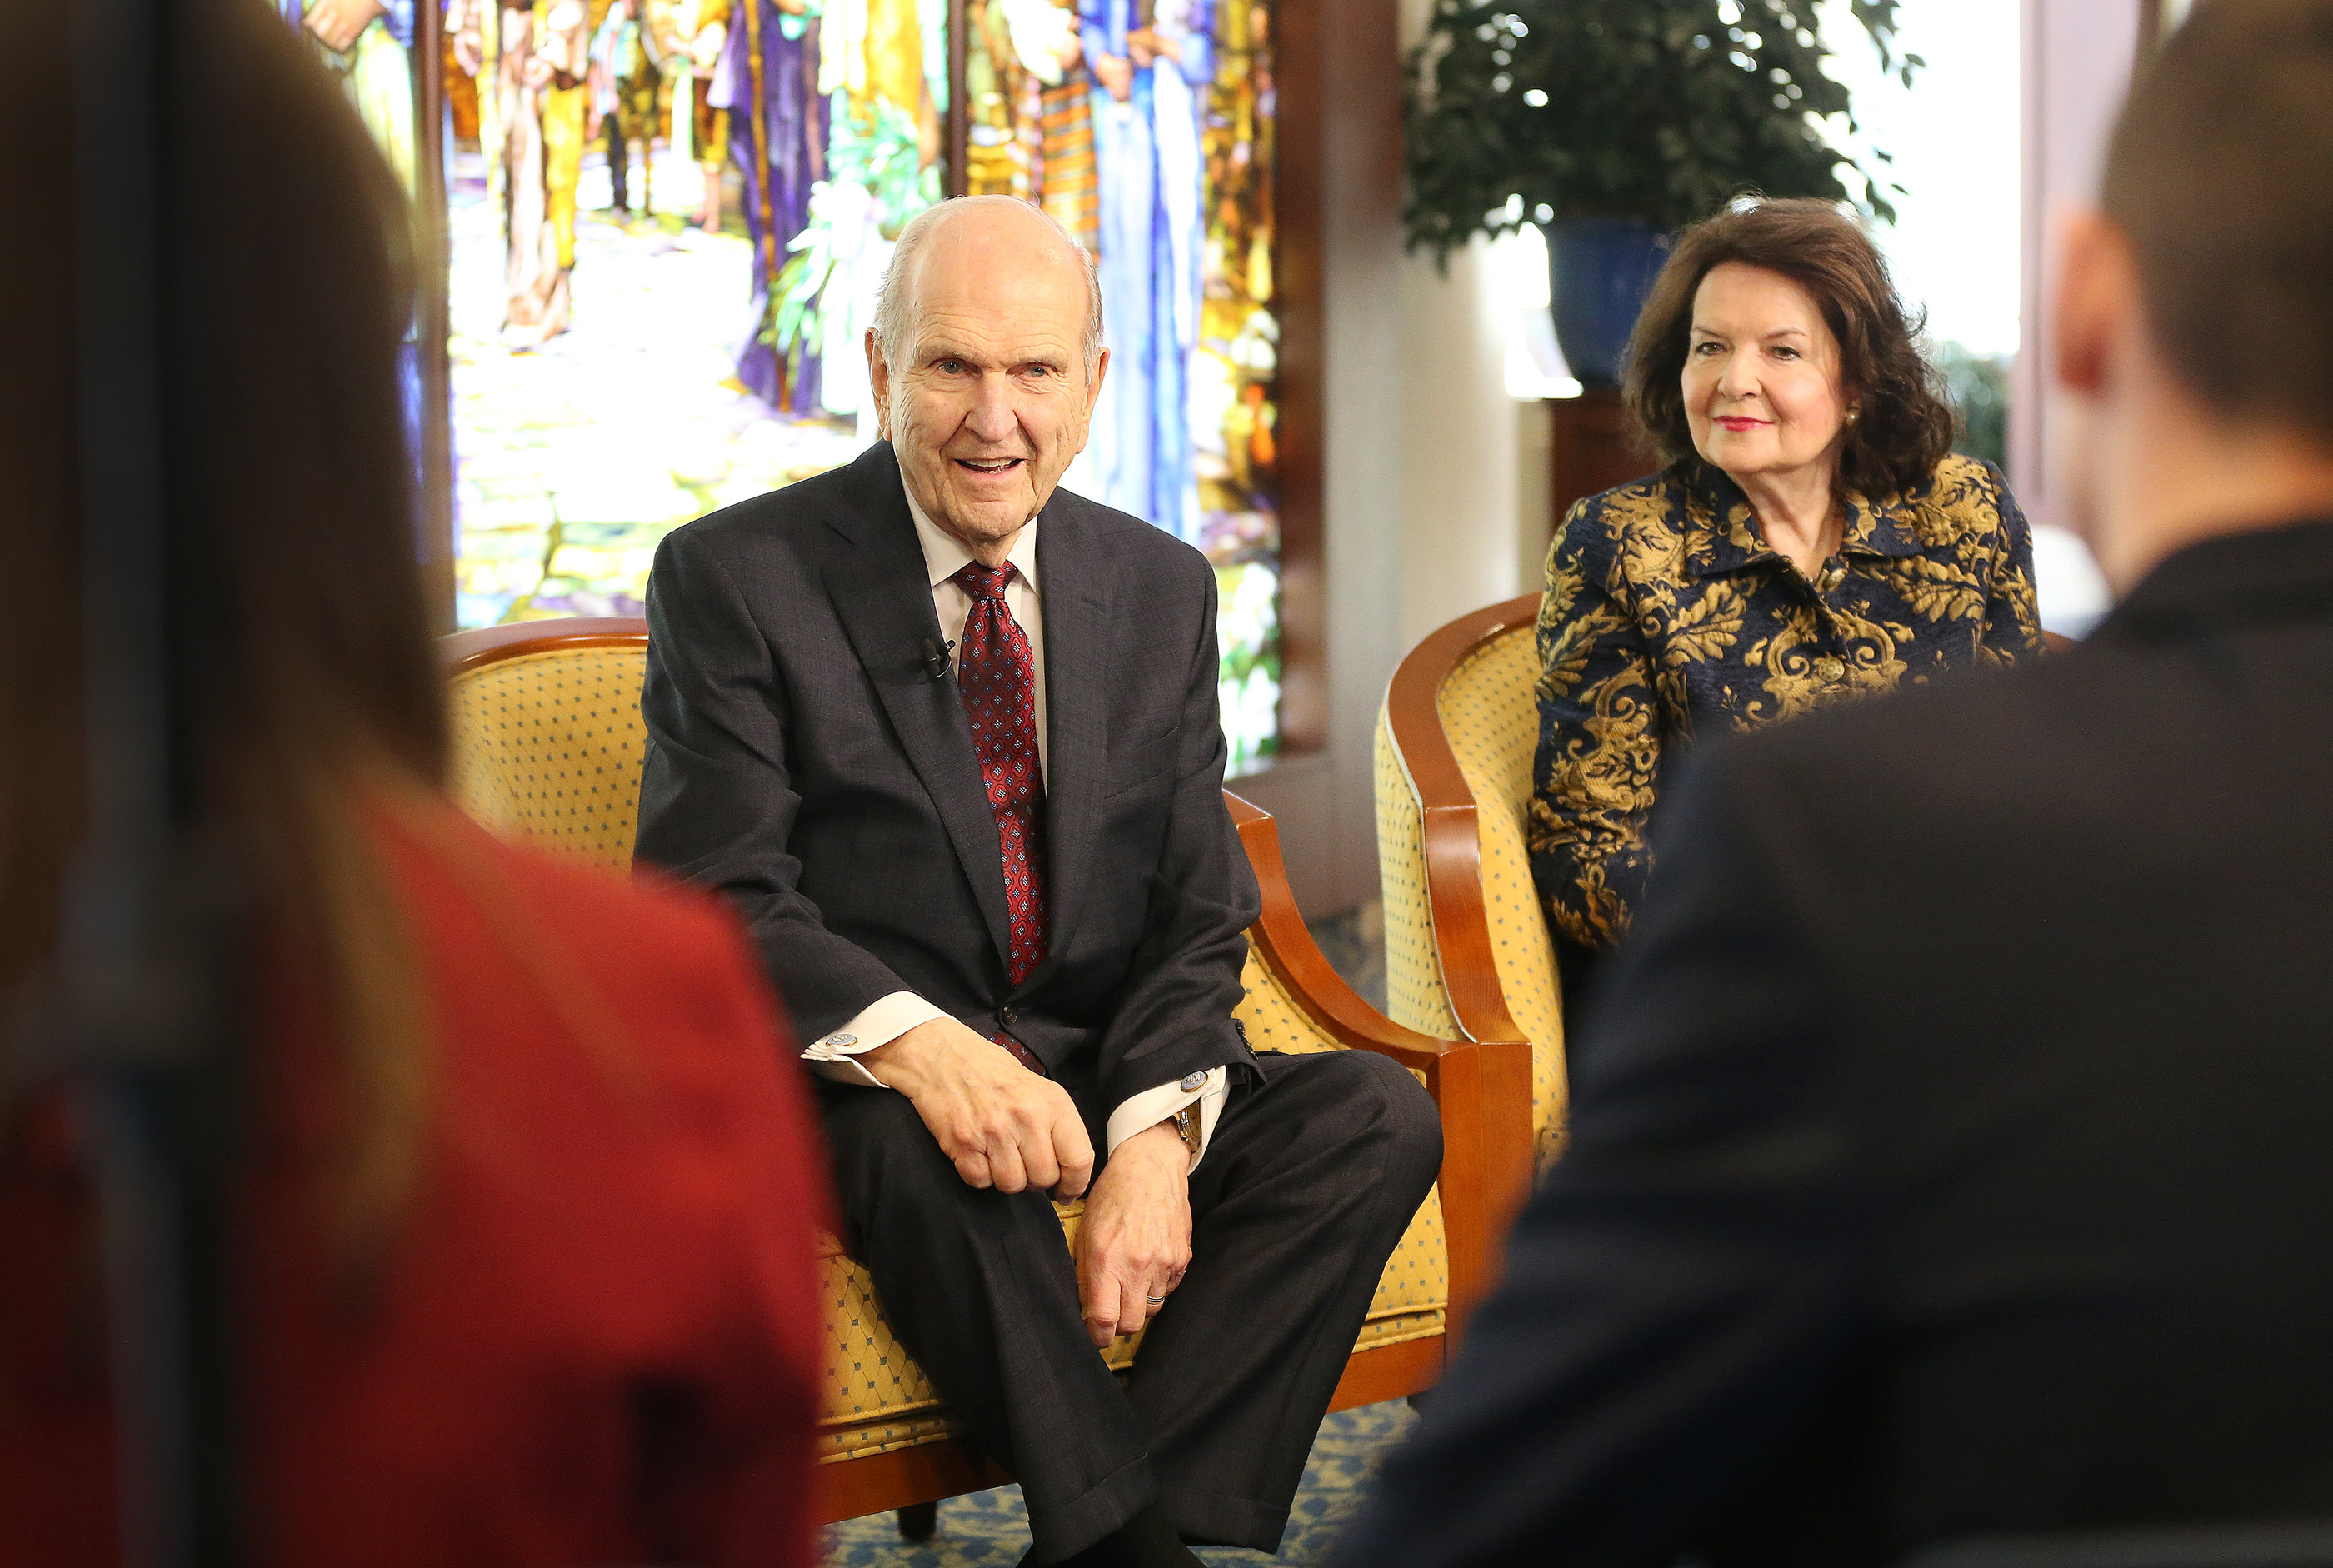 President Russell M. Nelson of The Church of Jesus Christ of Latter-day Saints and his wife, Sister Wendy Nelson, meet with youth in the Rome Italy Temple Visitors' Center prior to a youth devotional in Rome, Italy, on Saturday, March 9, 2019.